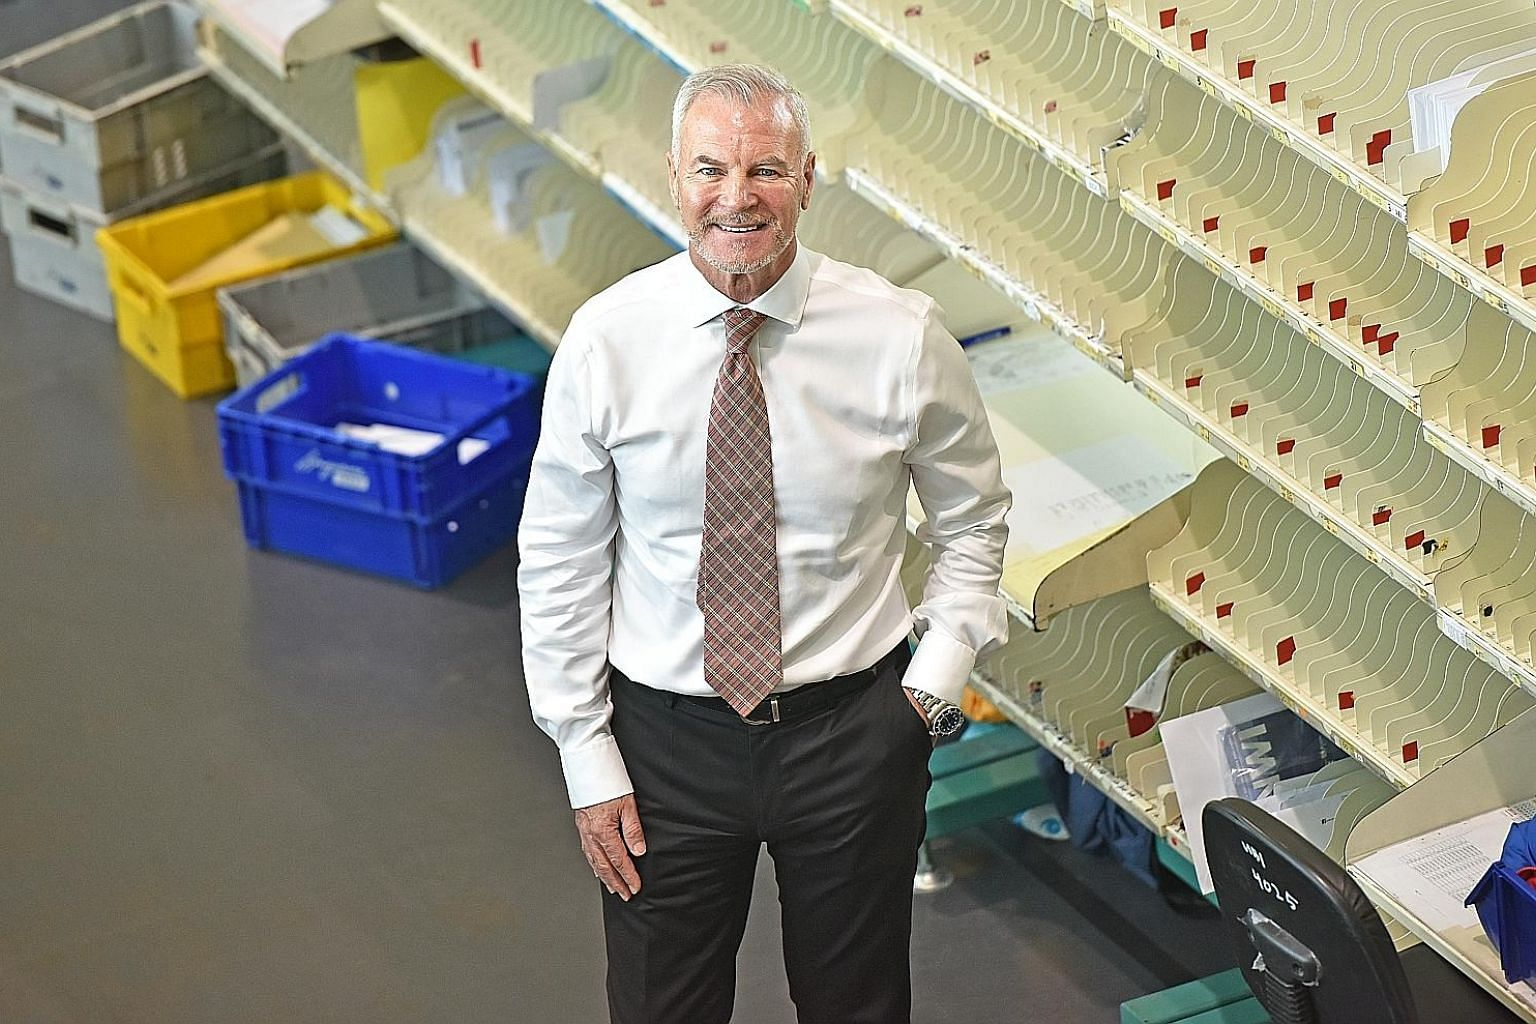 SingPost group chief executive Paul Coutts in the mail room at SingPost Centre. Mr Coutts said the surge in e-commerce volumes exposed weaknesses in SingPost's infrastructure and processes.